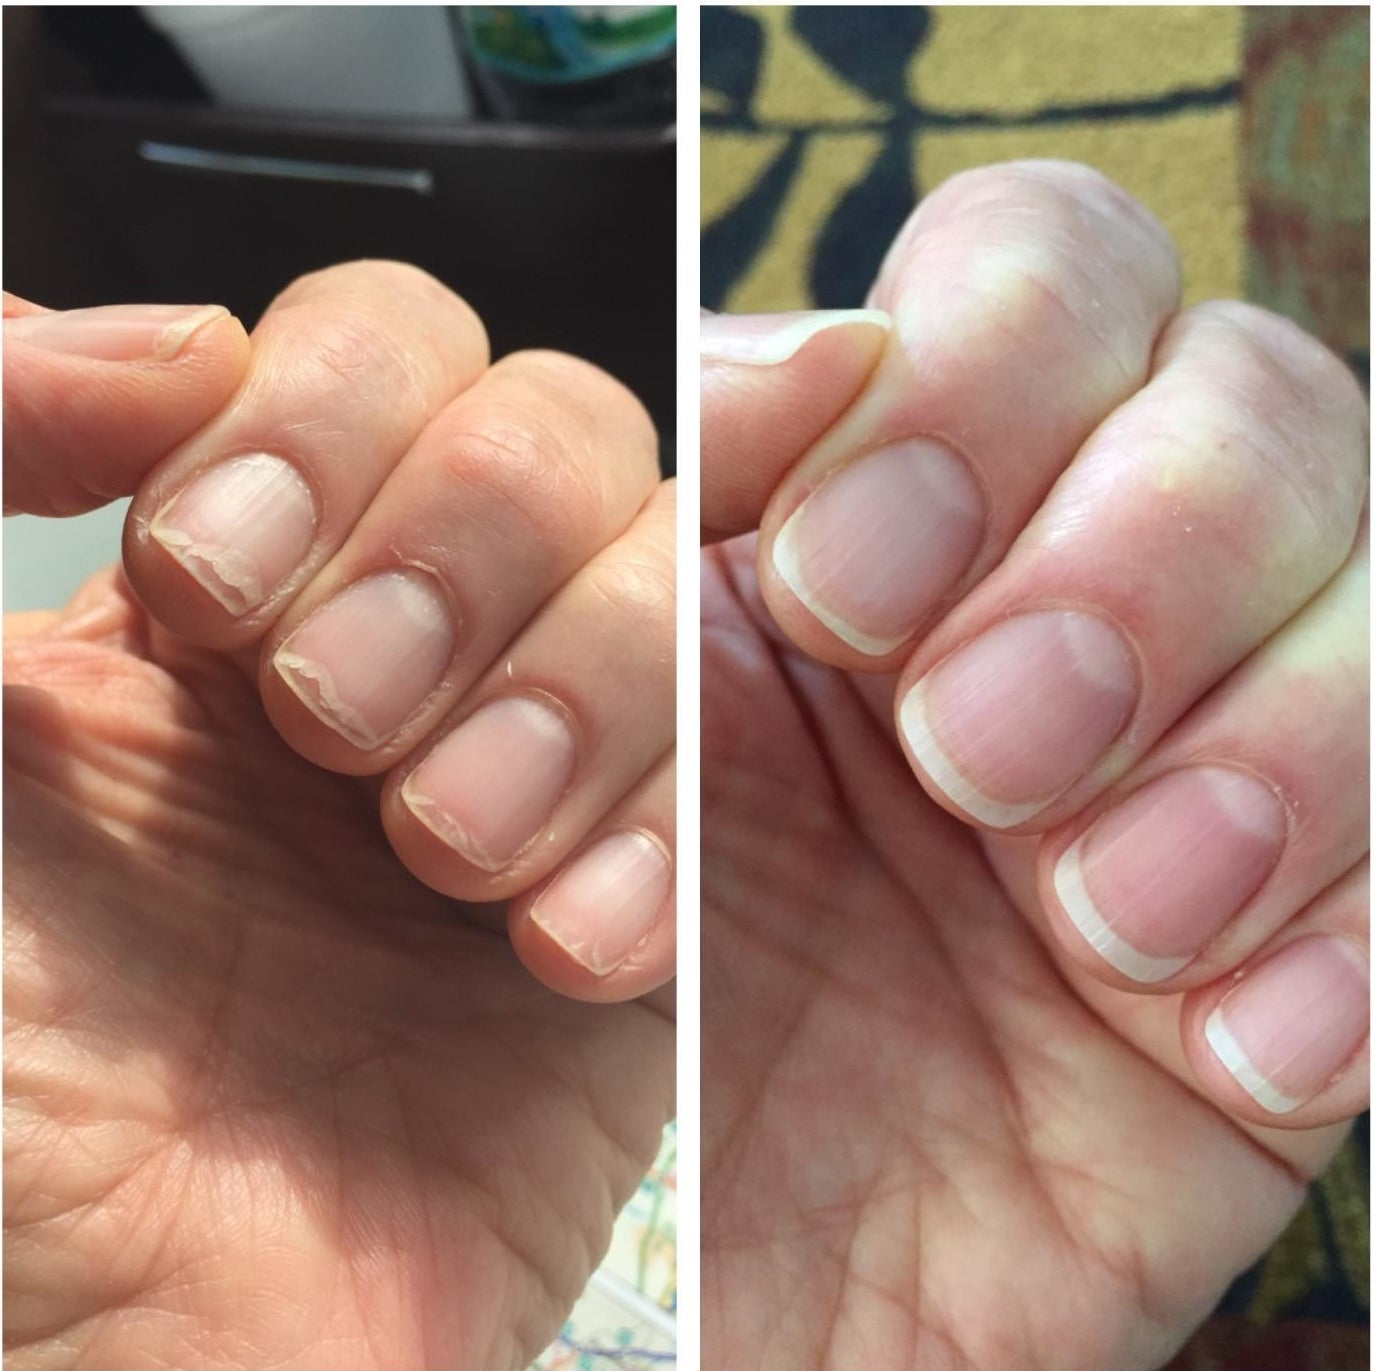 before: peeling chipped nails after: healthy nails